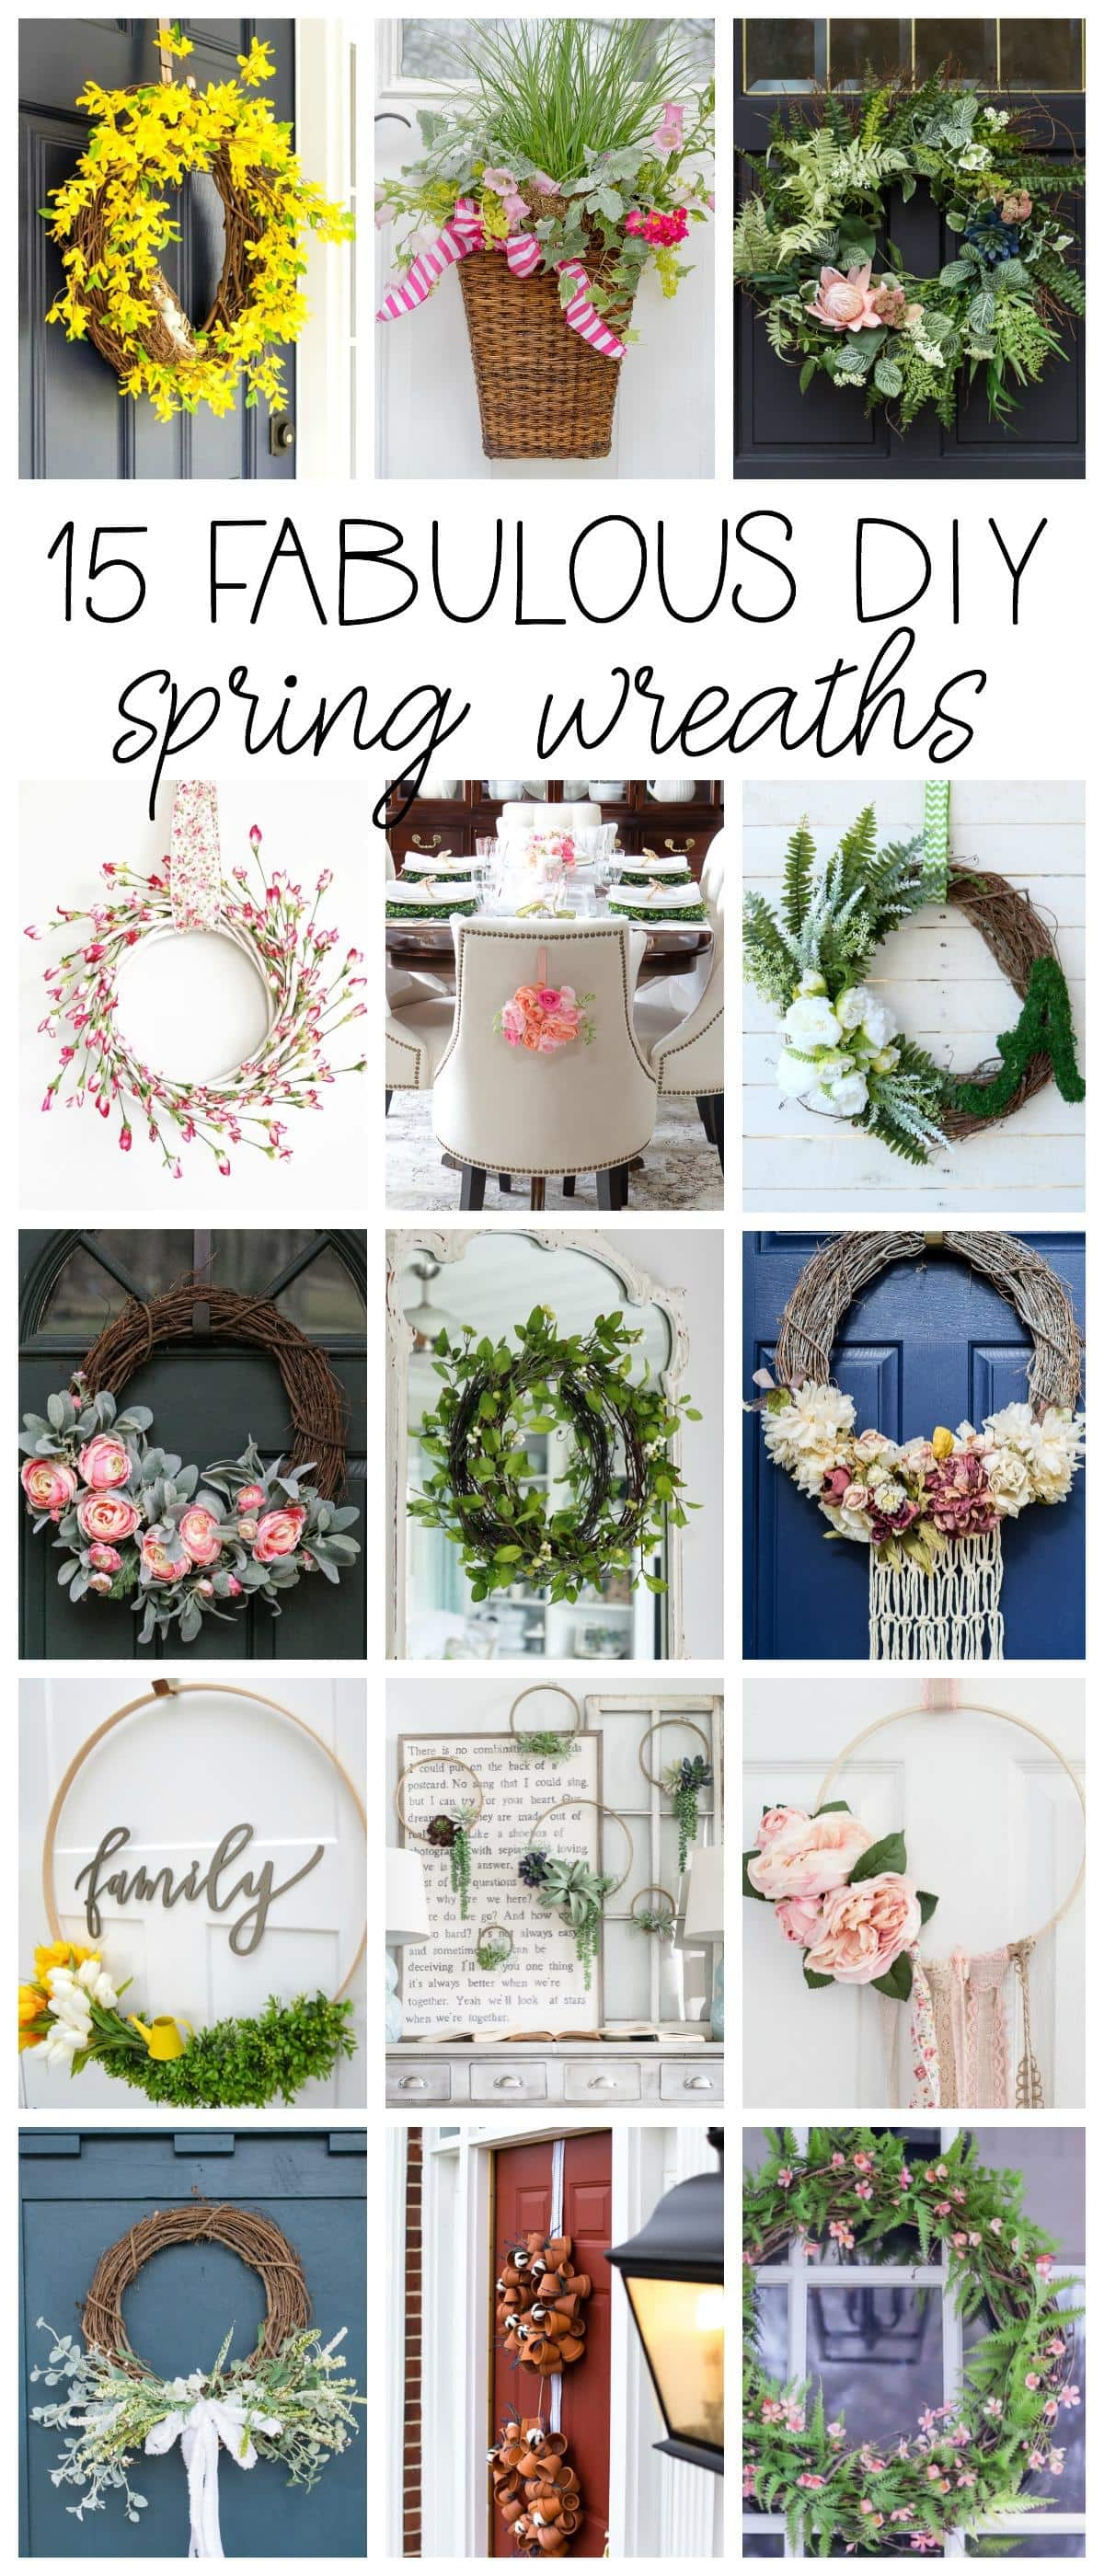 15 Fabulous DIY Spring Wreaths